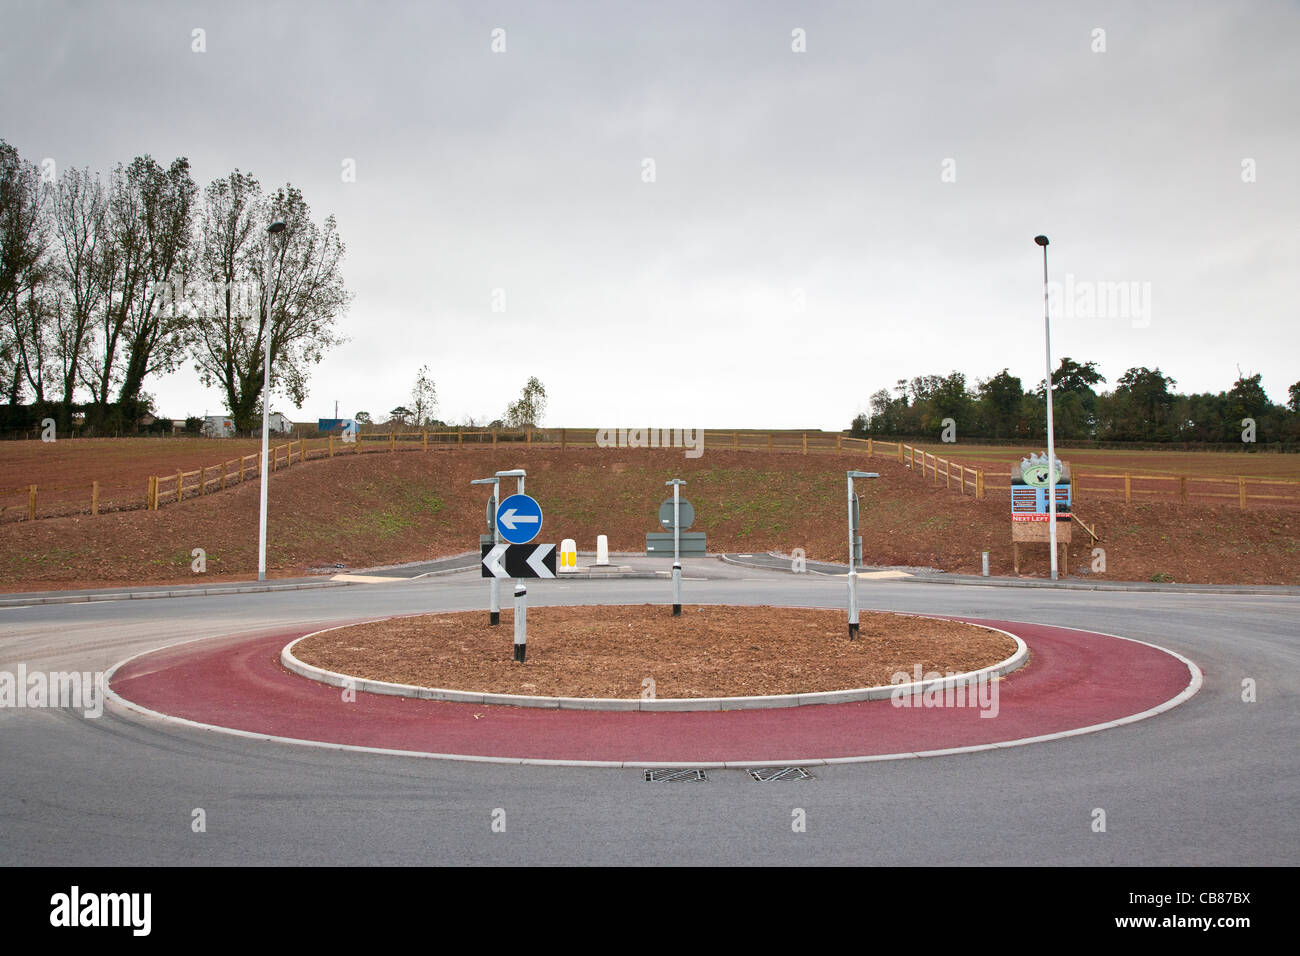 New roundabout in a road, Devon, England - Stock Image